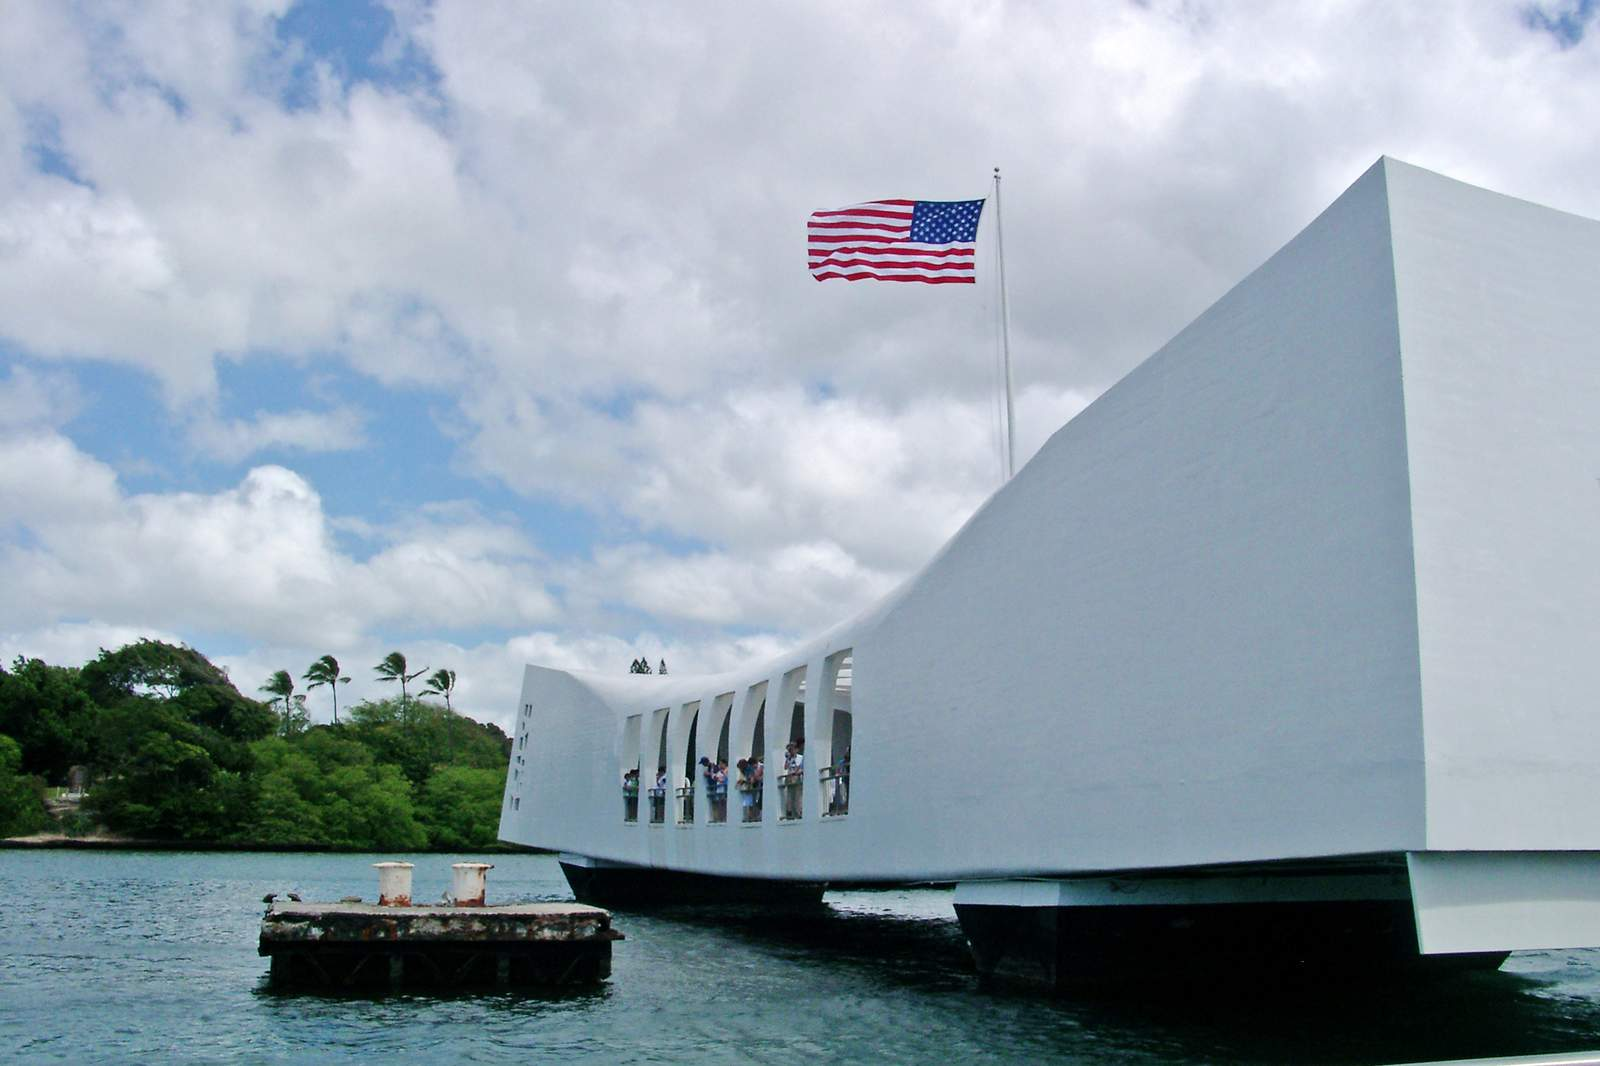 Das USS Arizona Memorial auf Ford Island, Hawaii